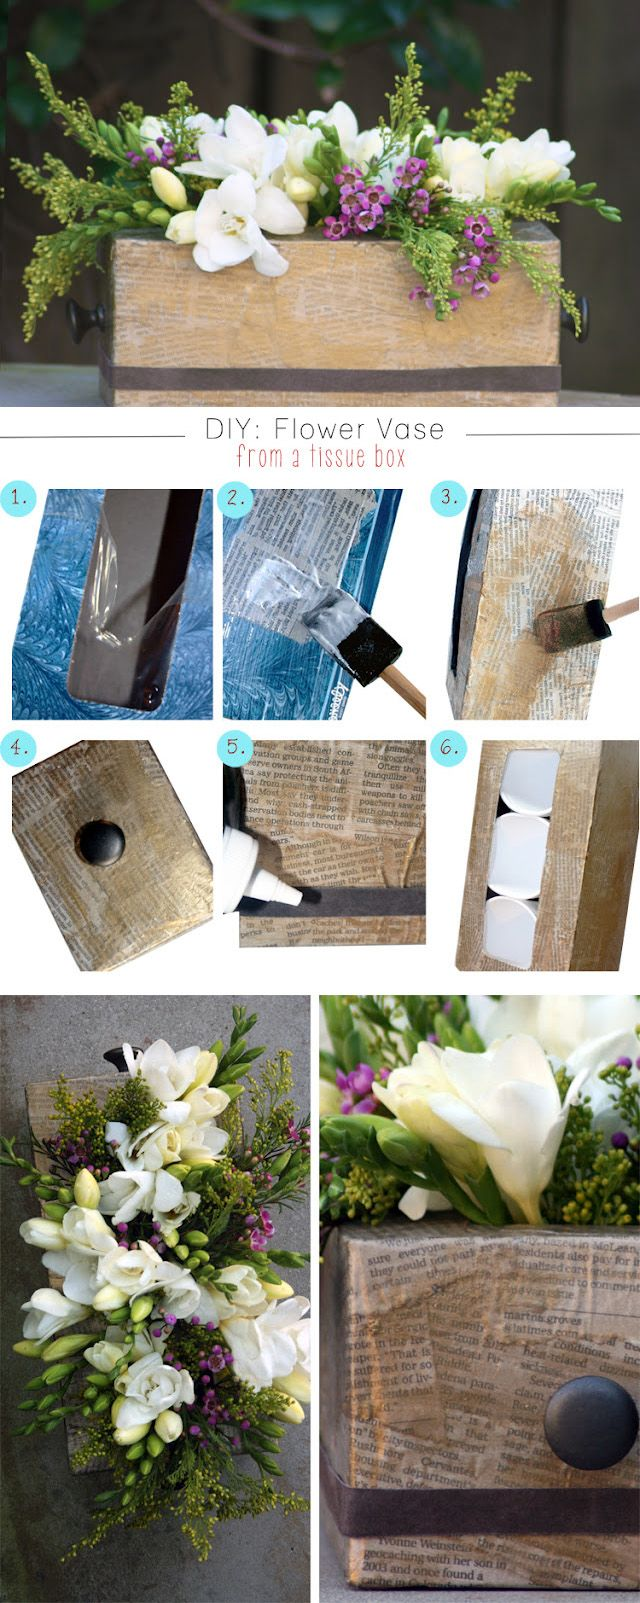 DIY VASES :: DIY Kleenex Box Flower Vase Tutorial from Creme de la Craft :: Use newspaper strips or old book pages. She also attaches 2 knobs on either side of the box to dress it up, securing them with E6000 glue. So cute!